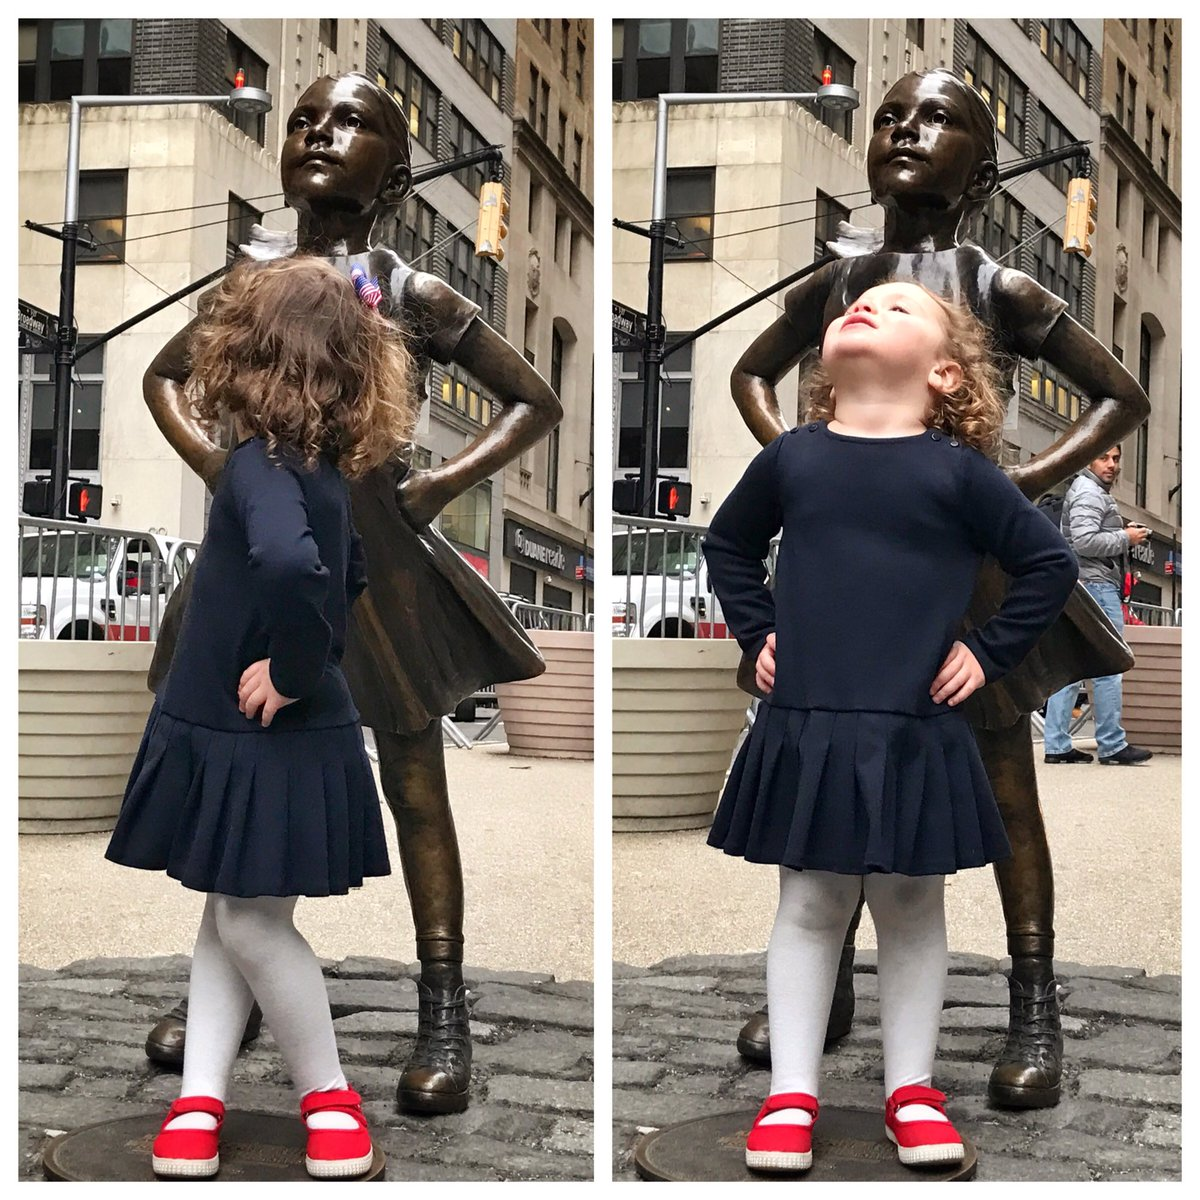 As seen at the Fearless Girl statue... https://t.co/OiX7uHSQo4